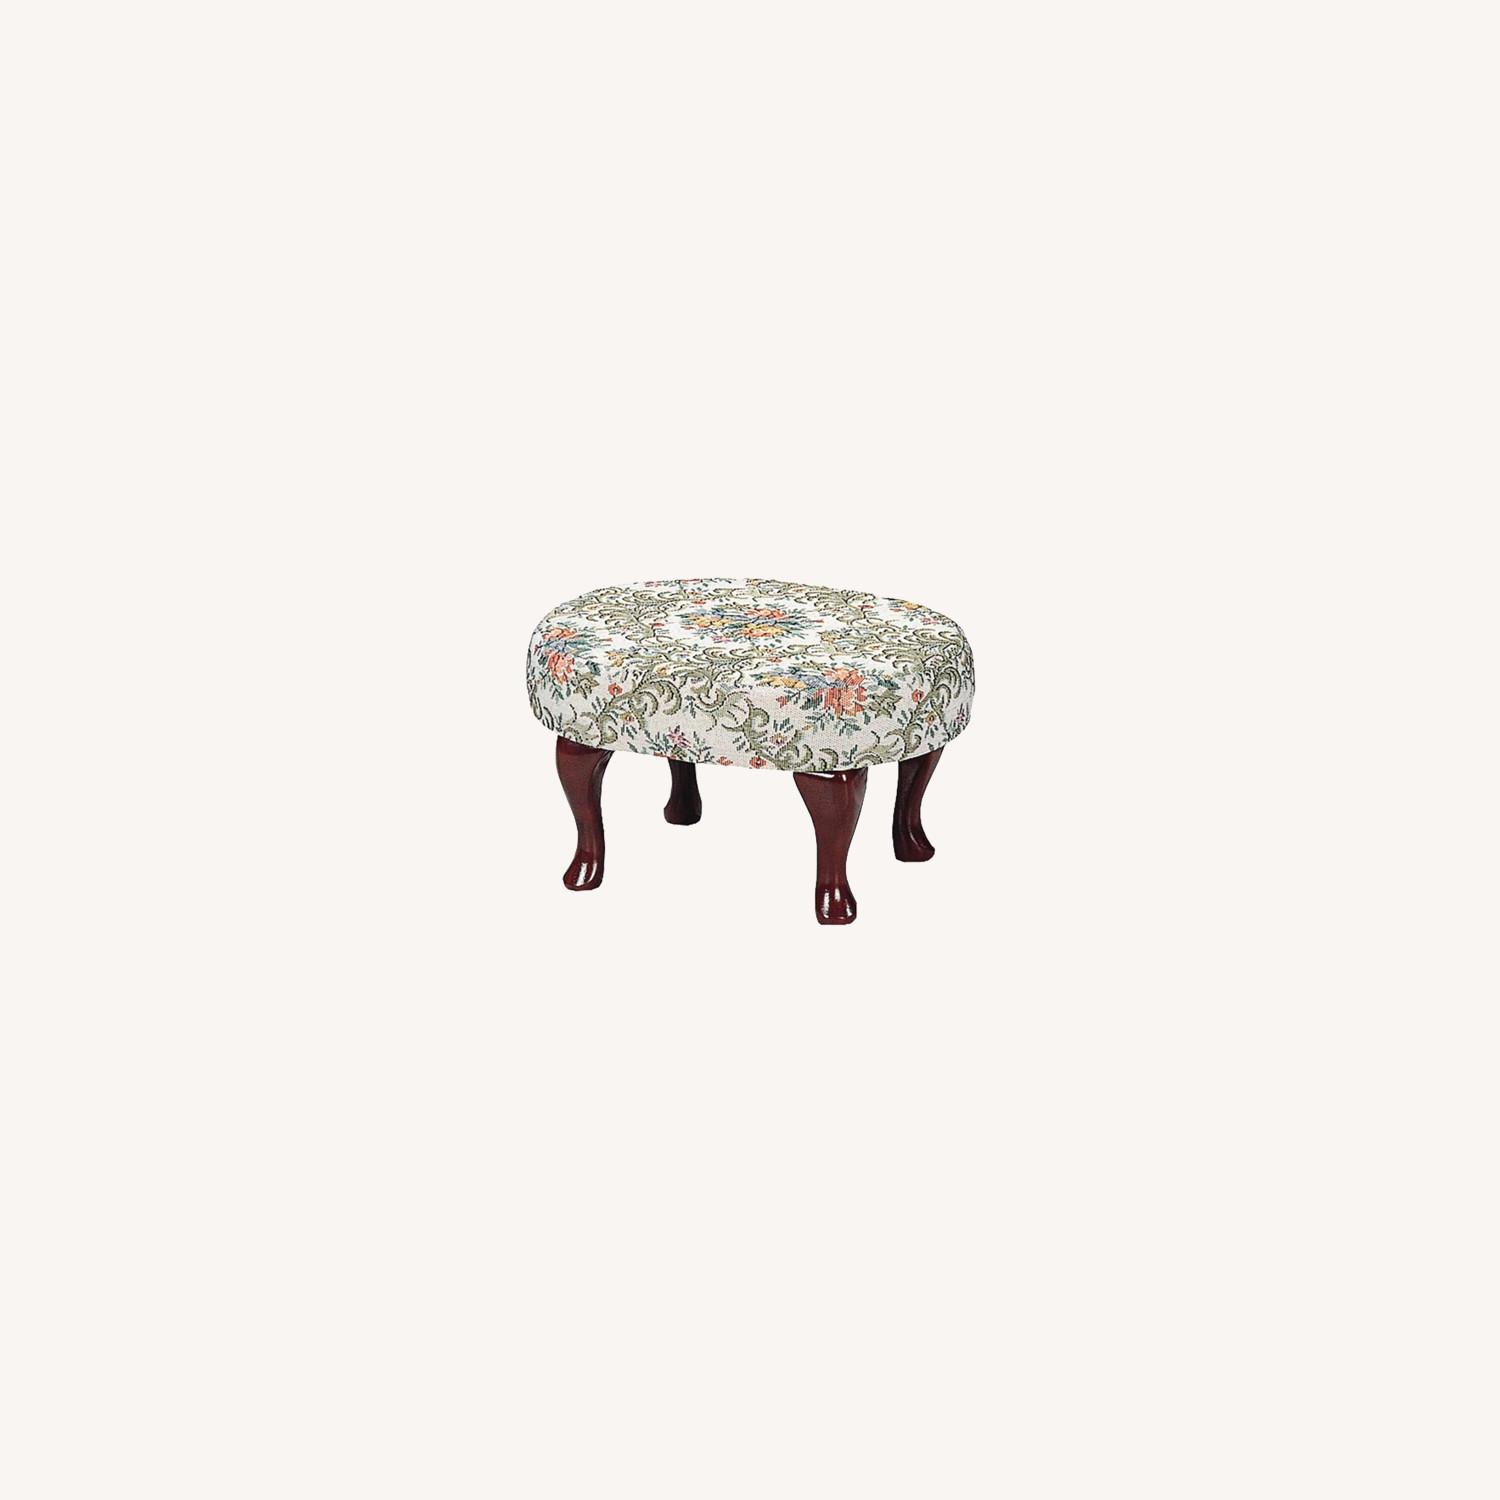 Mid Century Stool In Multi-Color Patterned Finish - image-4